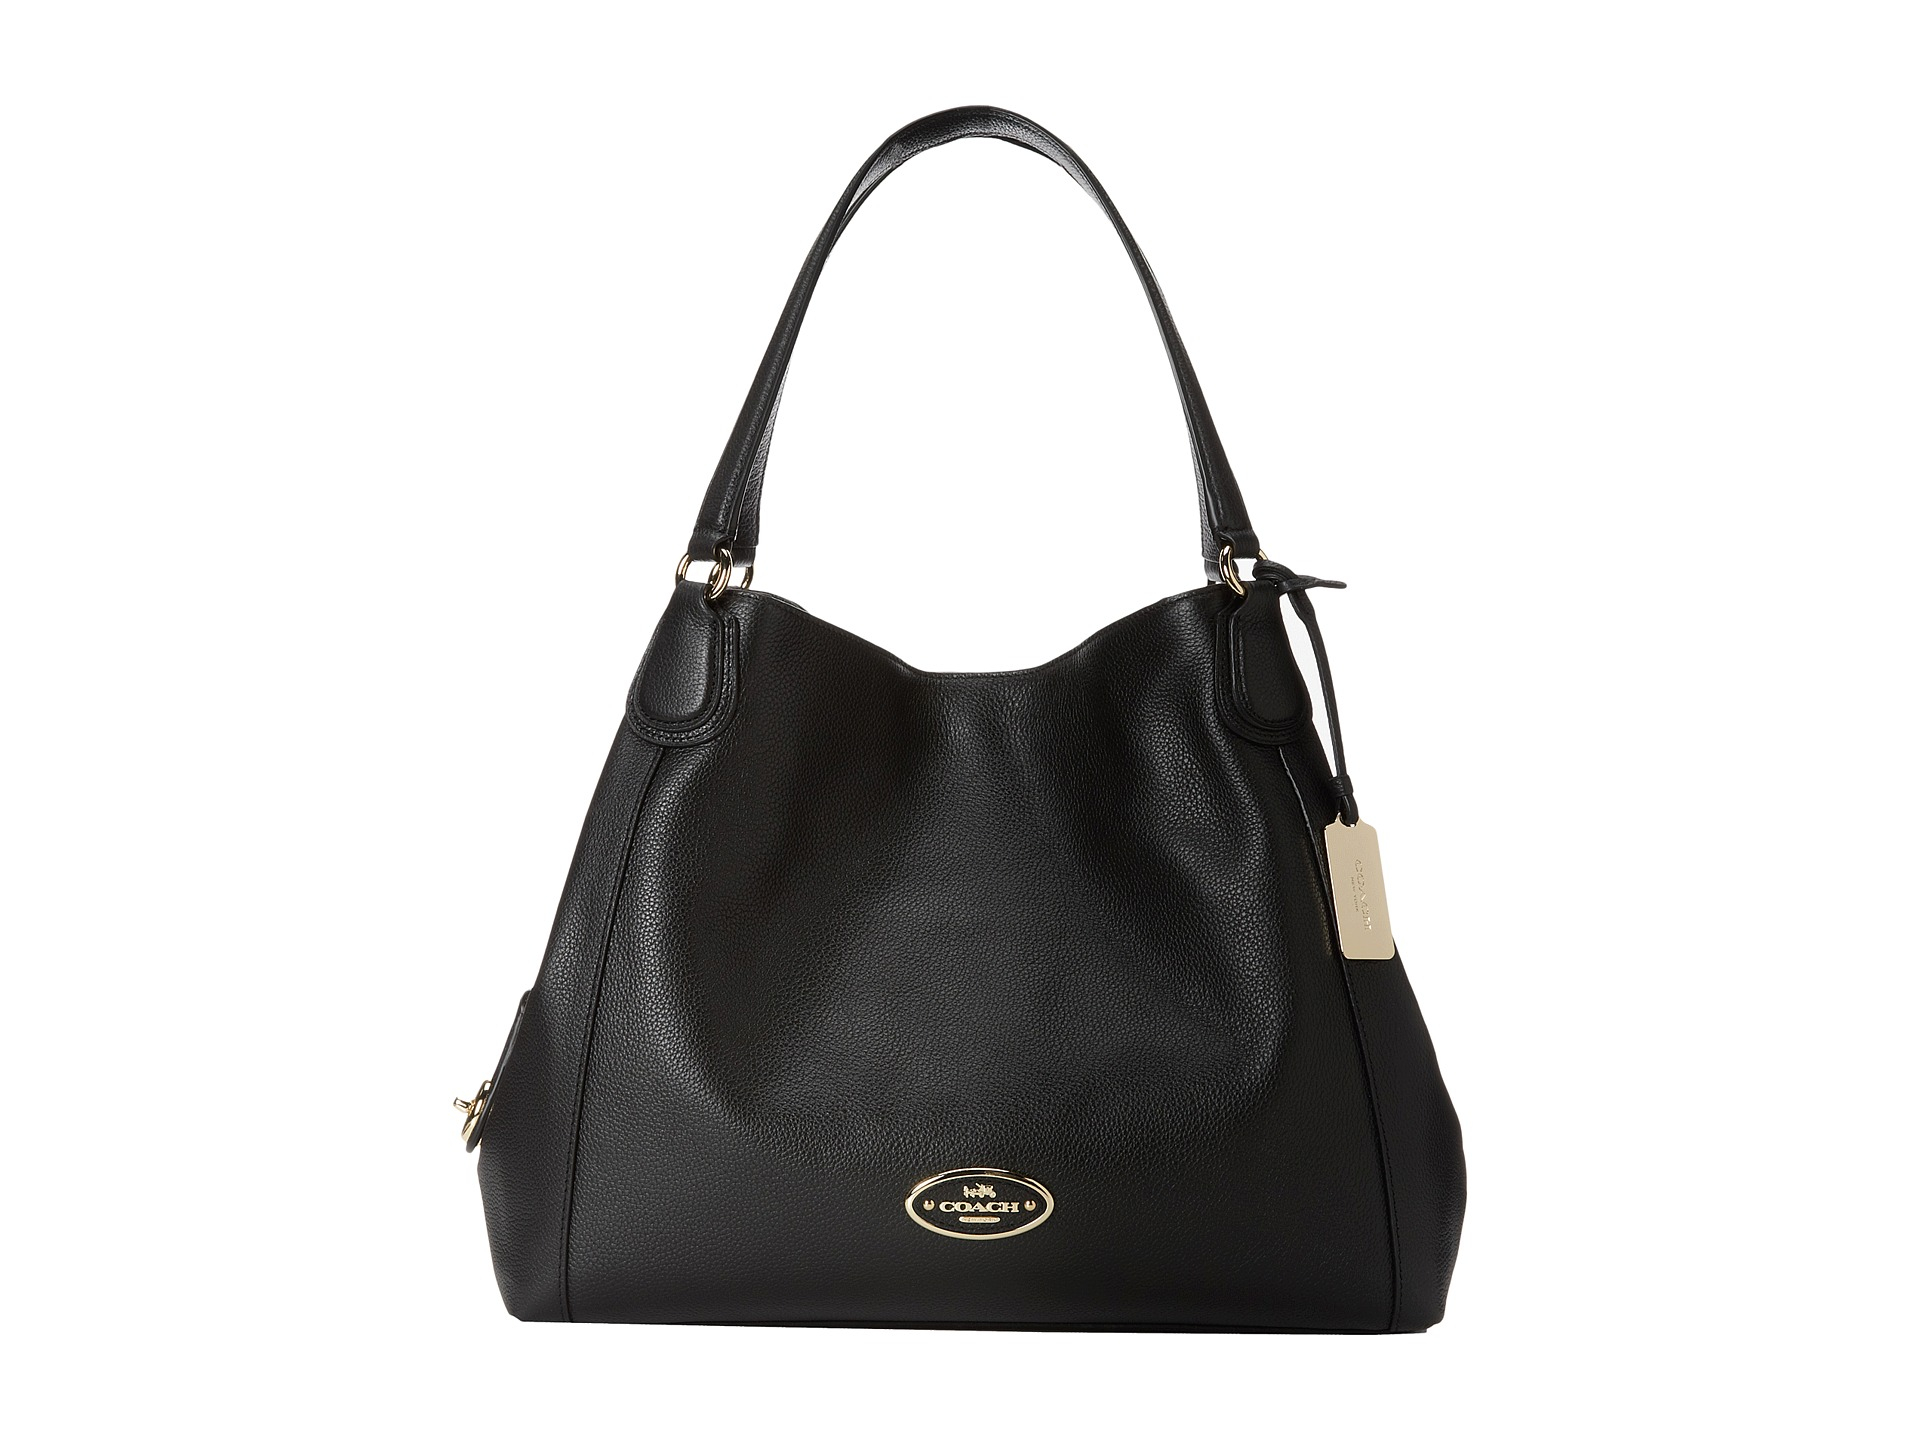 Lyst - Coach Refined Pebbled Leather Edie Shoulder Bag in ...